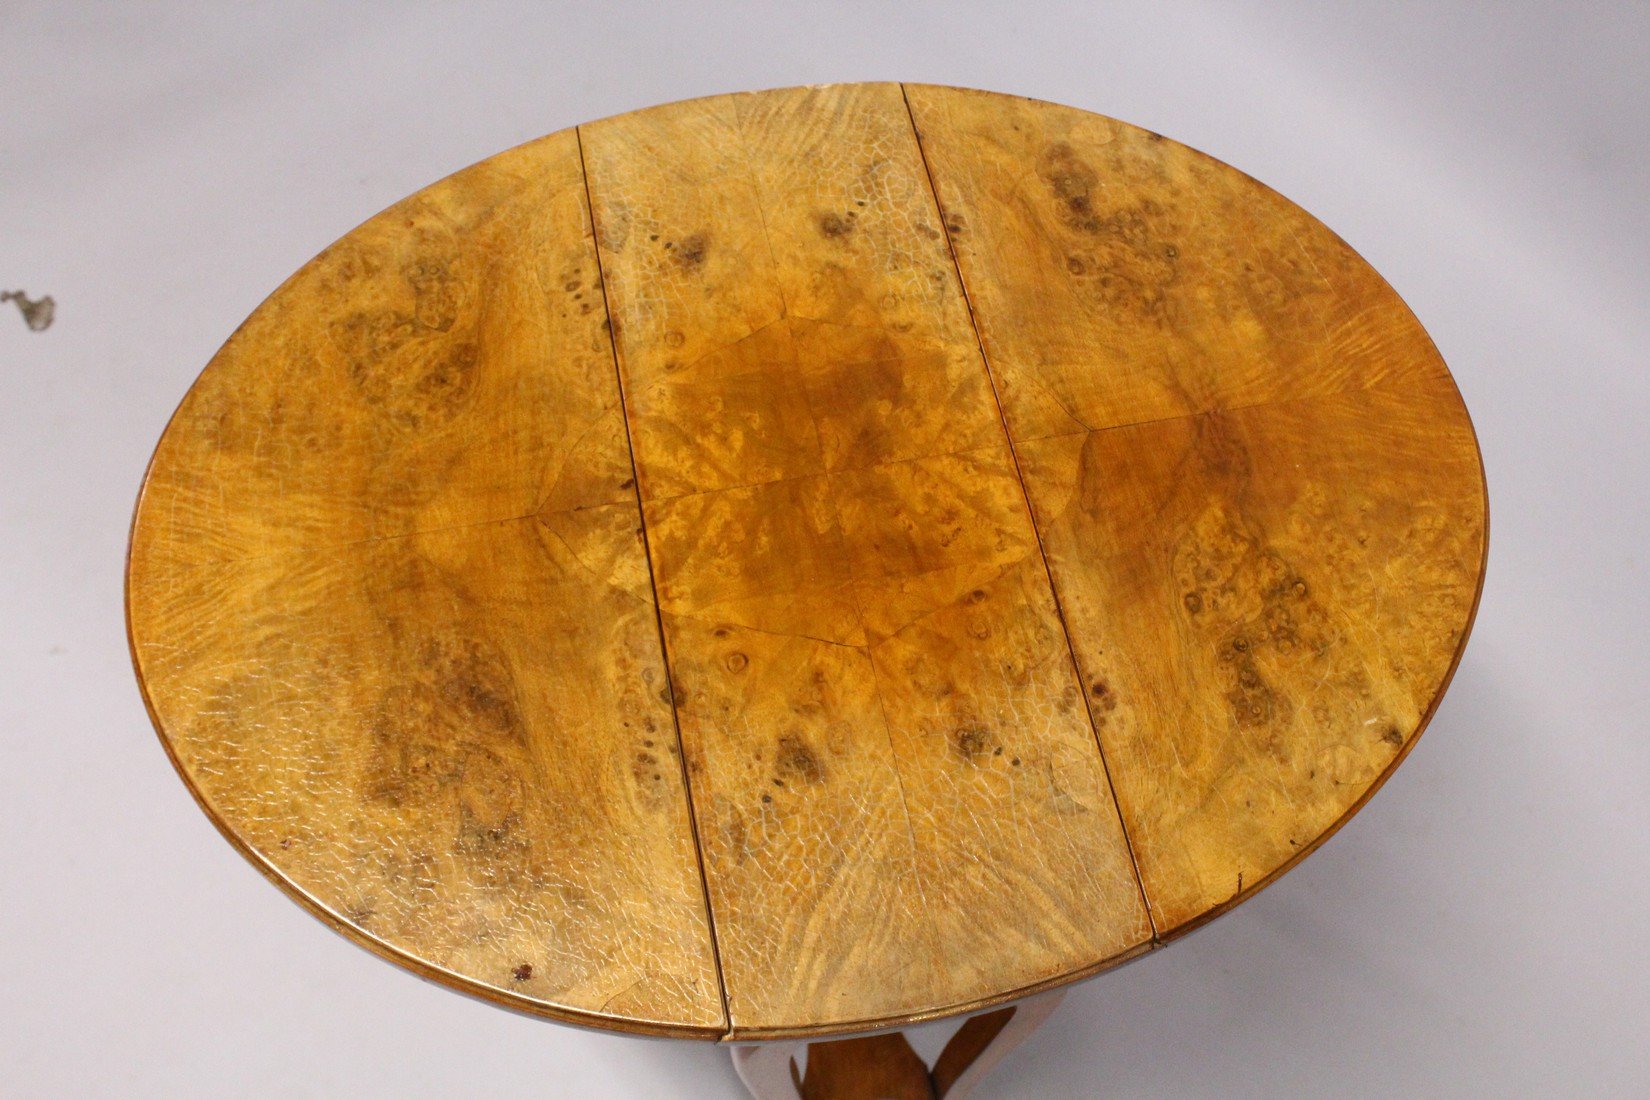 A POLLARD OAK OVAL DROP FLAP TABLE with undertier and curving legs. - Image 3 of 3